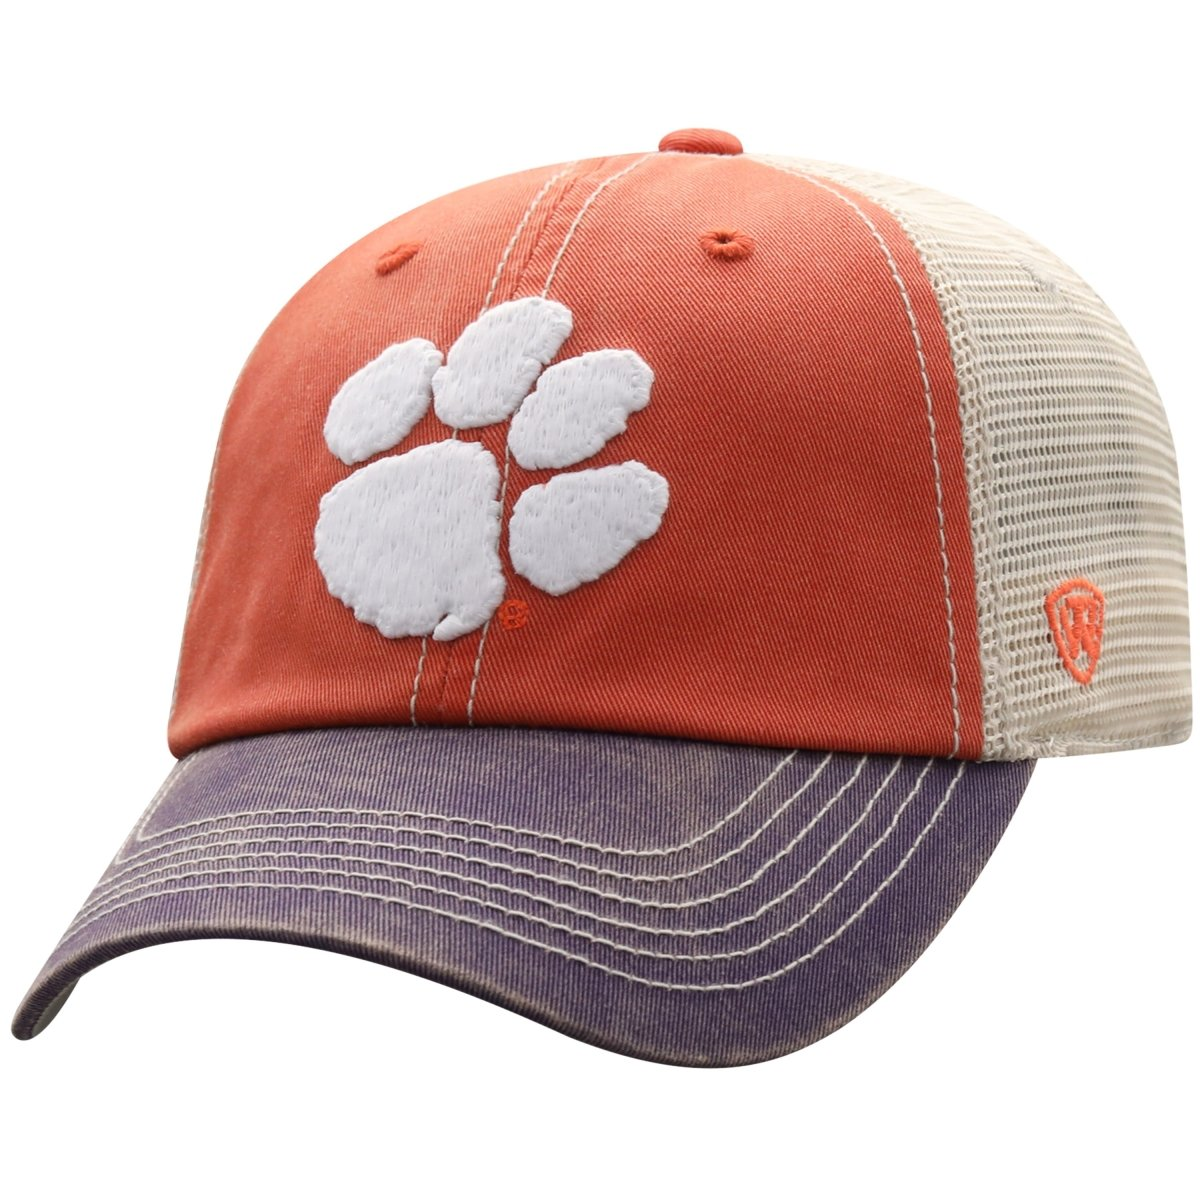 Top of the World Clemson Tigers Offroad 3-tone Trucker Hat - Mr. Knickerbocker